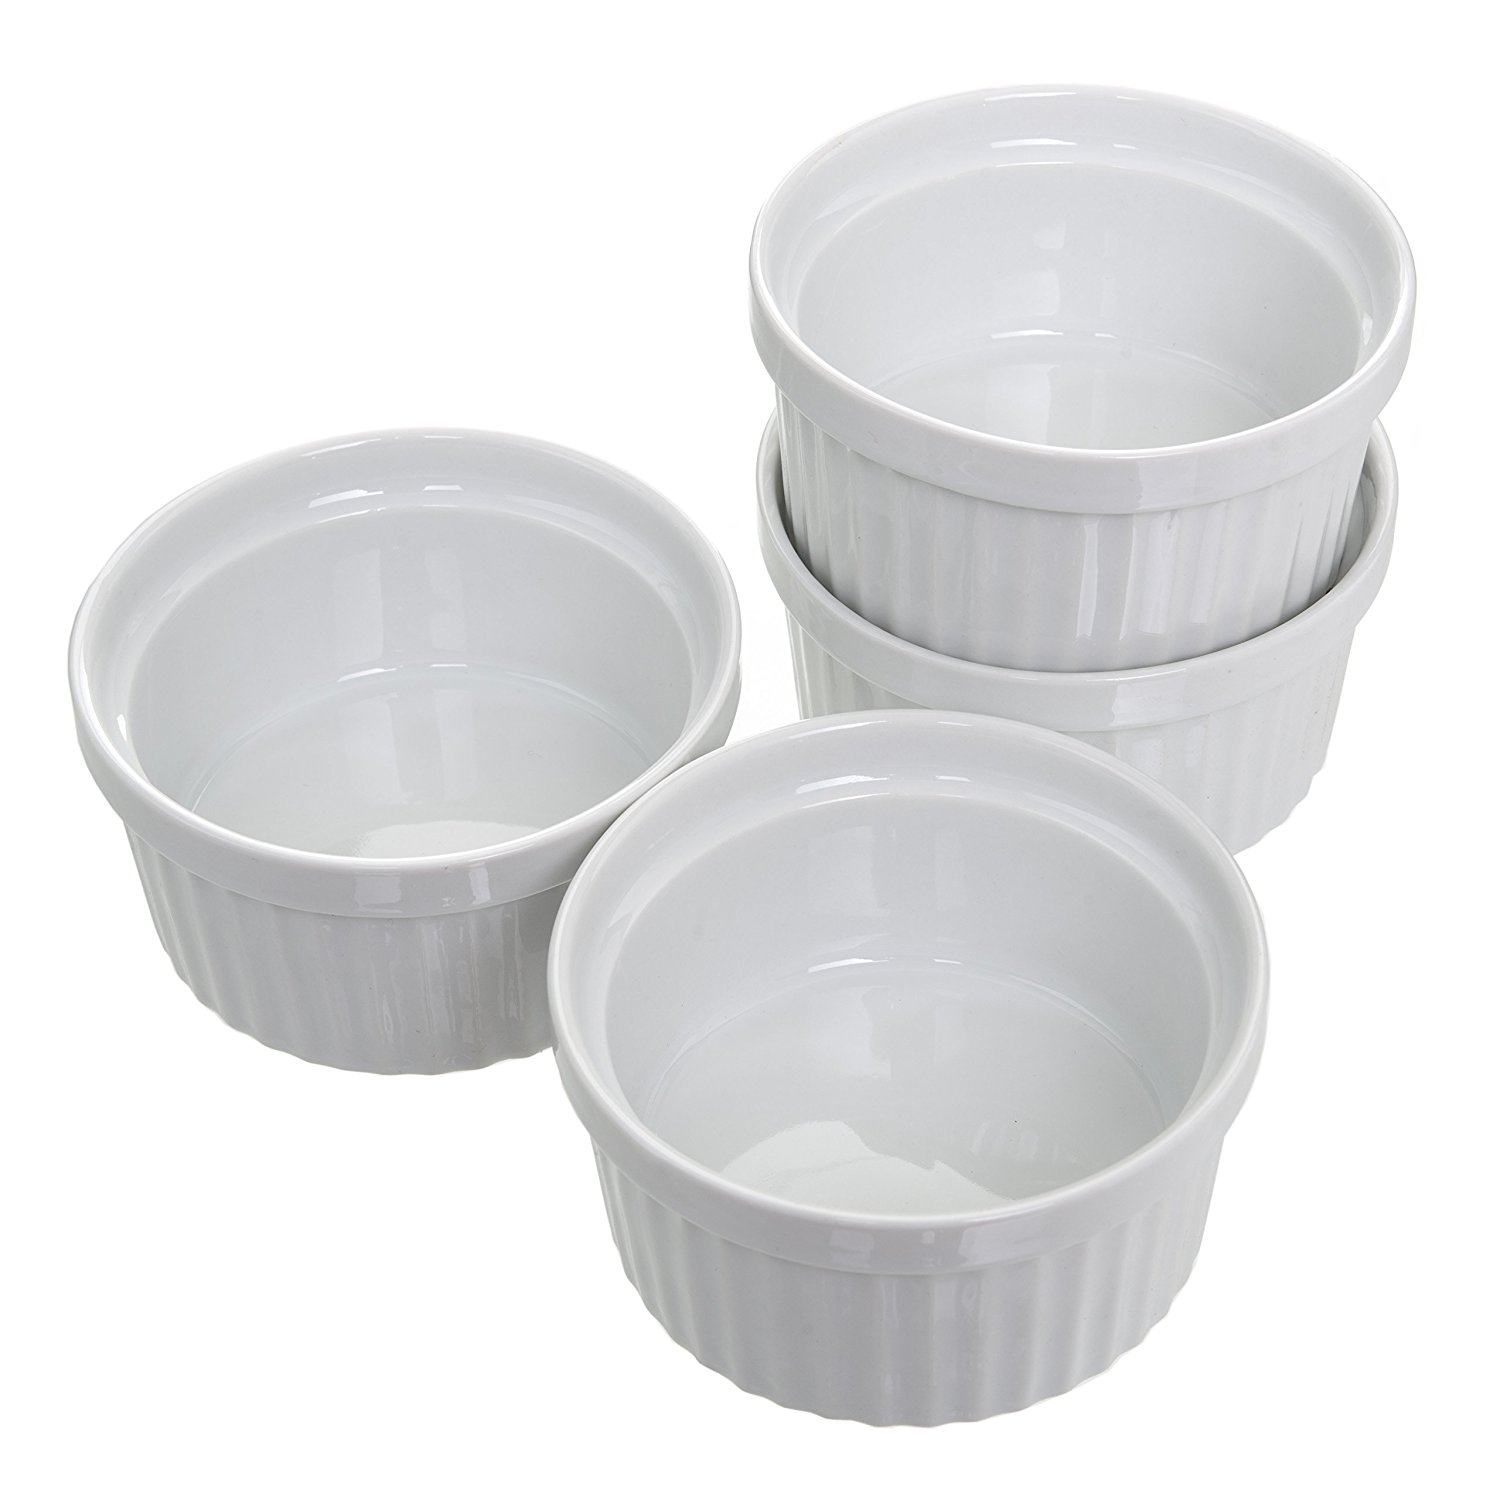 4 oz. Porcelain Ramekins (Set of 4) Souffle Cups Dishes Creme Brulee Pudding Custard Cups Desserts White... by